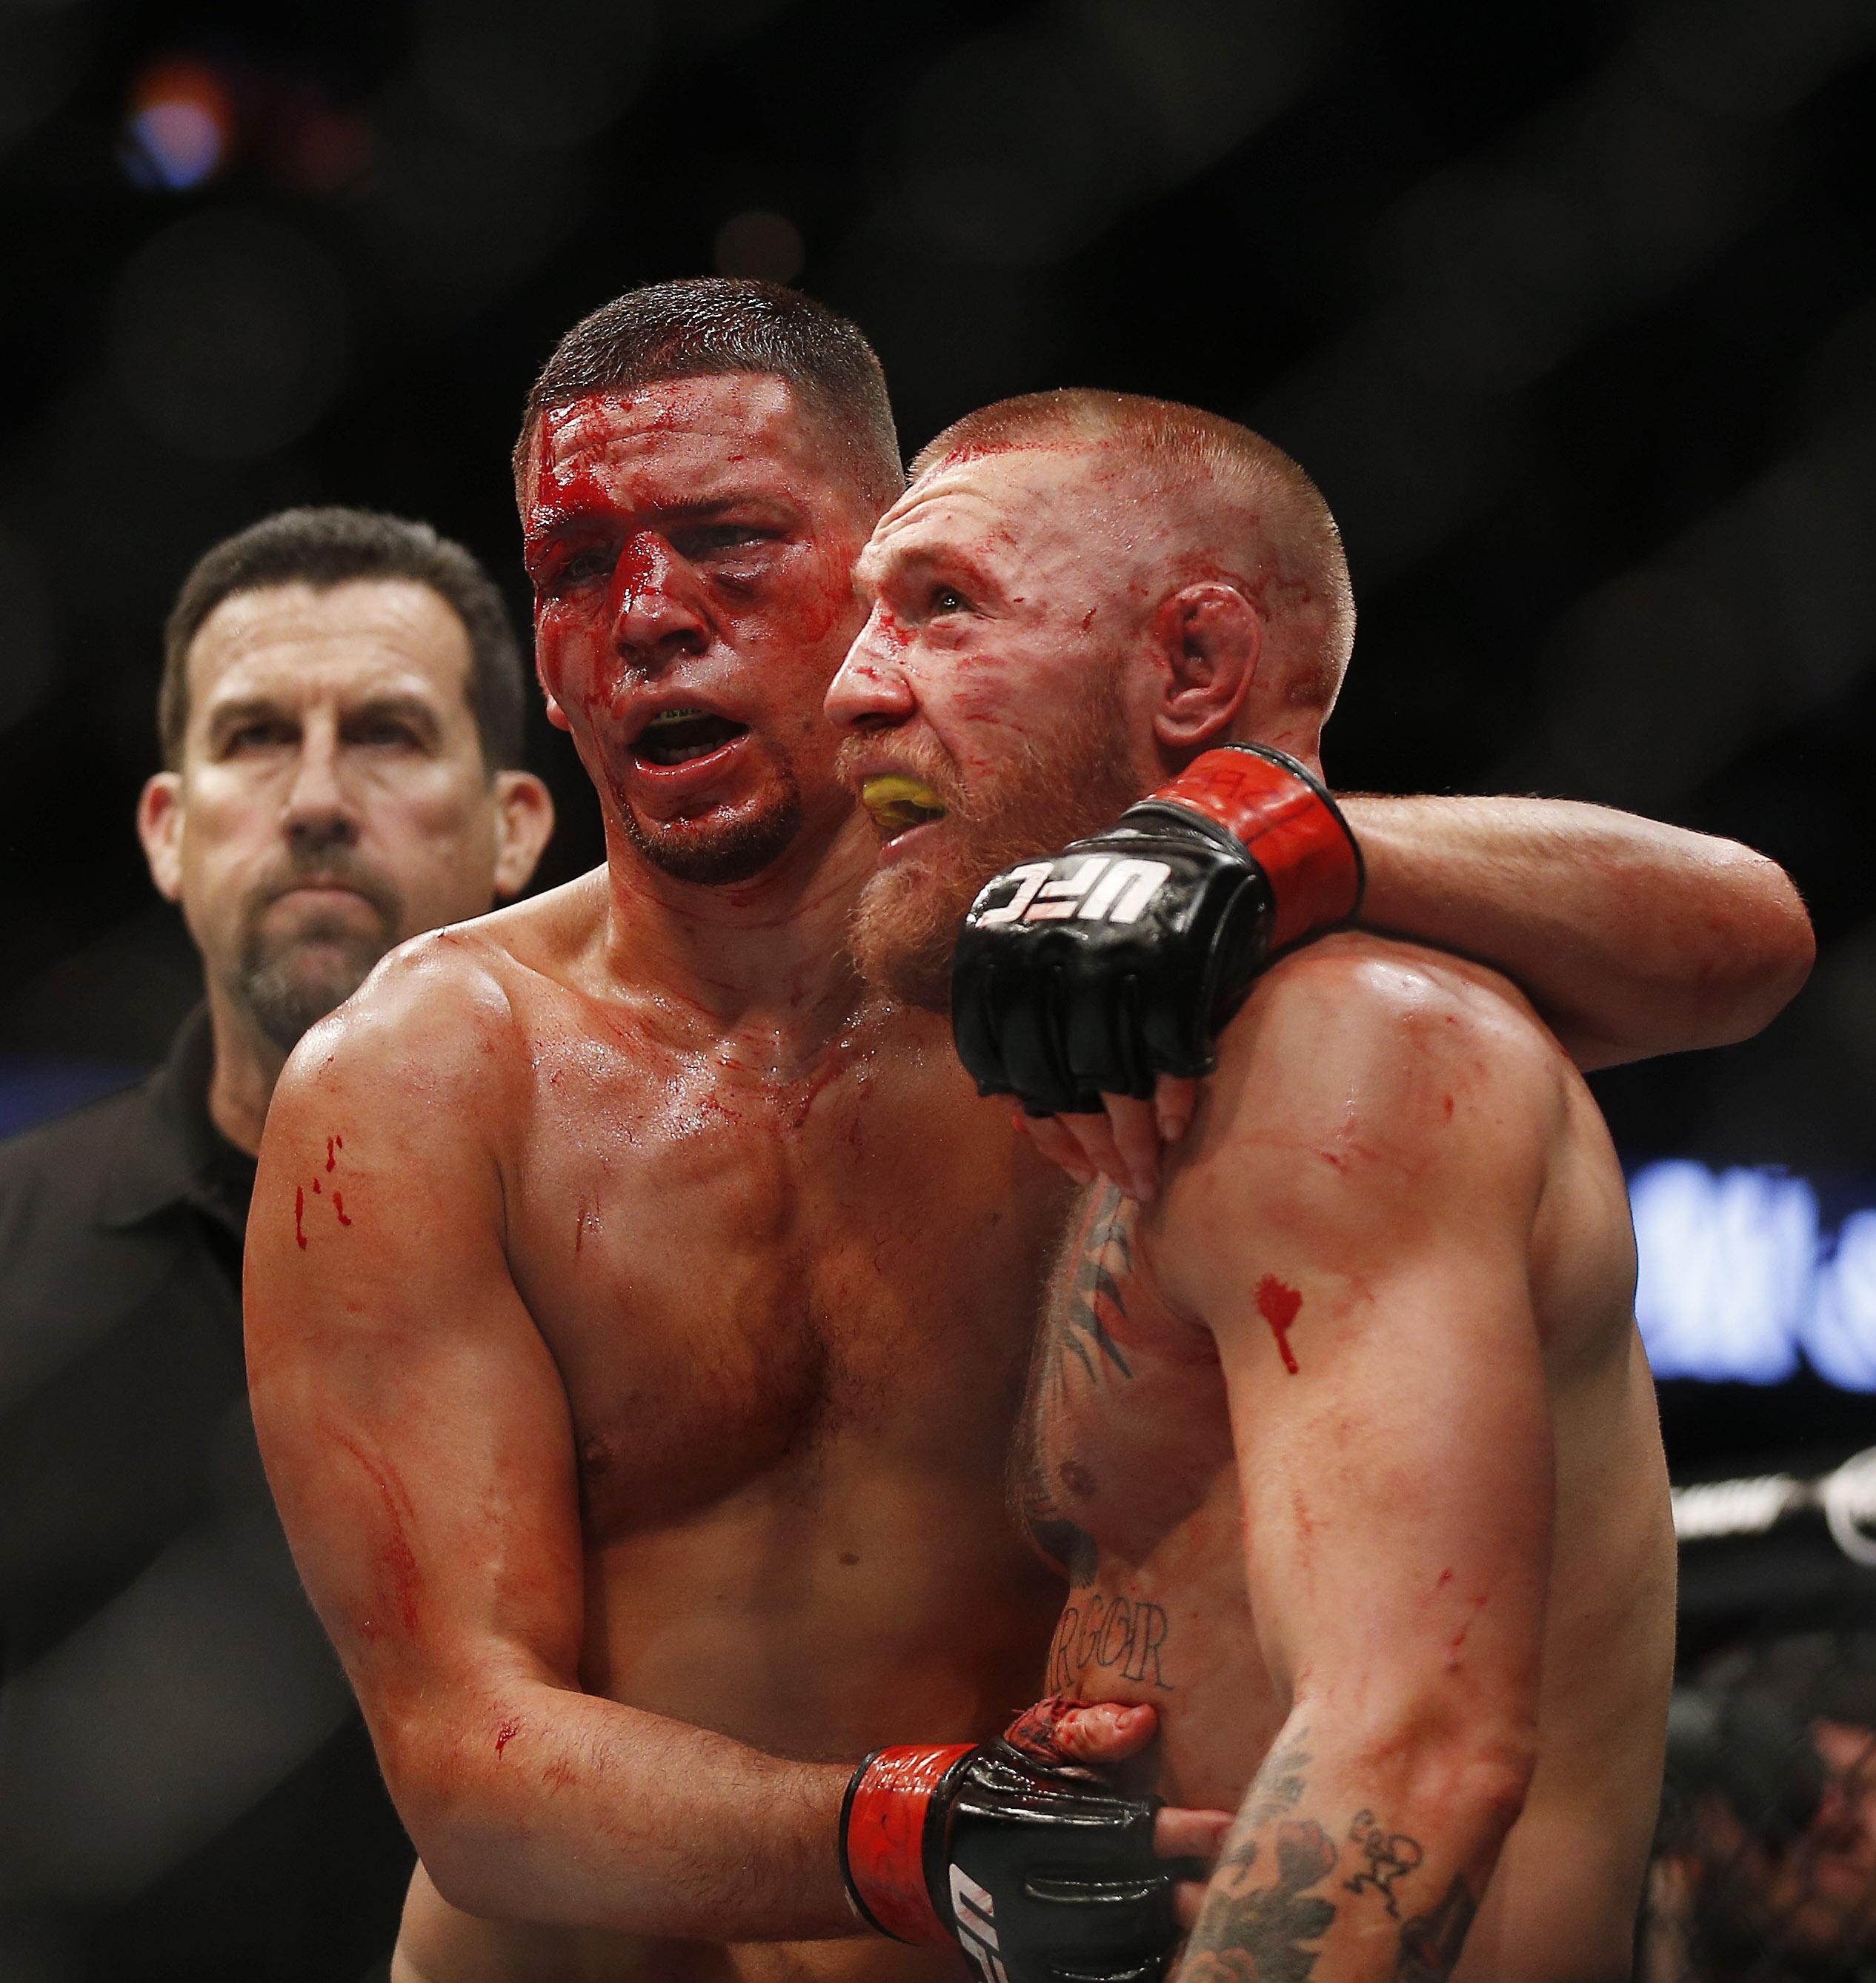 Nate Diaz and Conor McGregor fought twice in 2016 with the Irish fighter winning the second bout